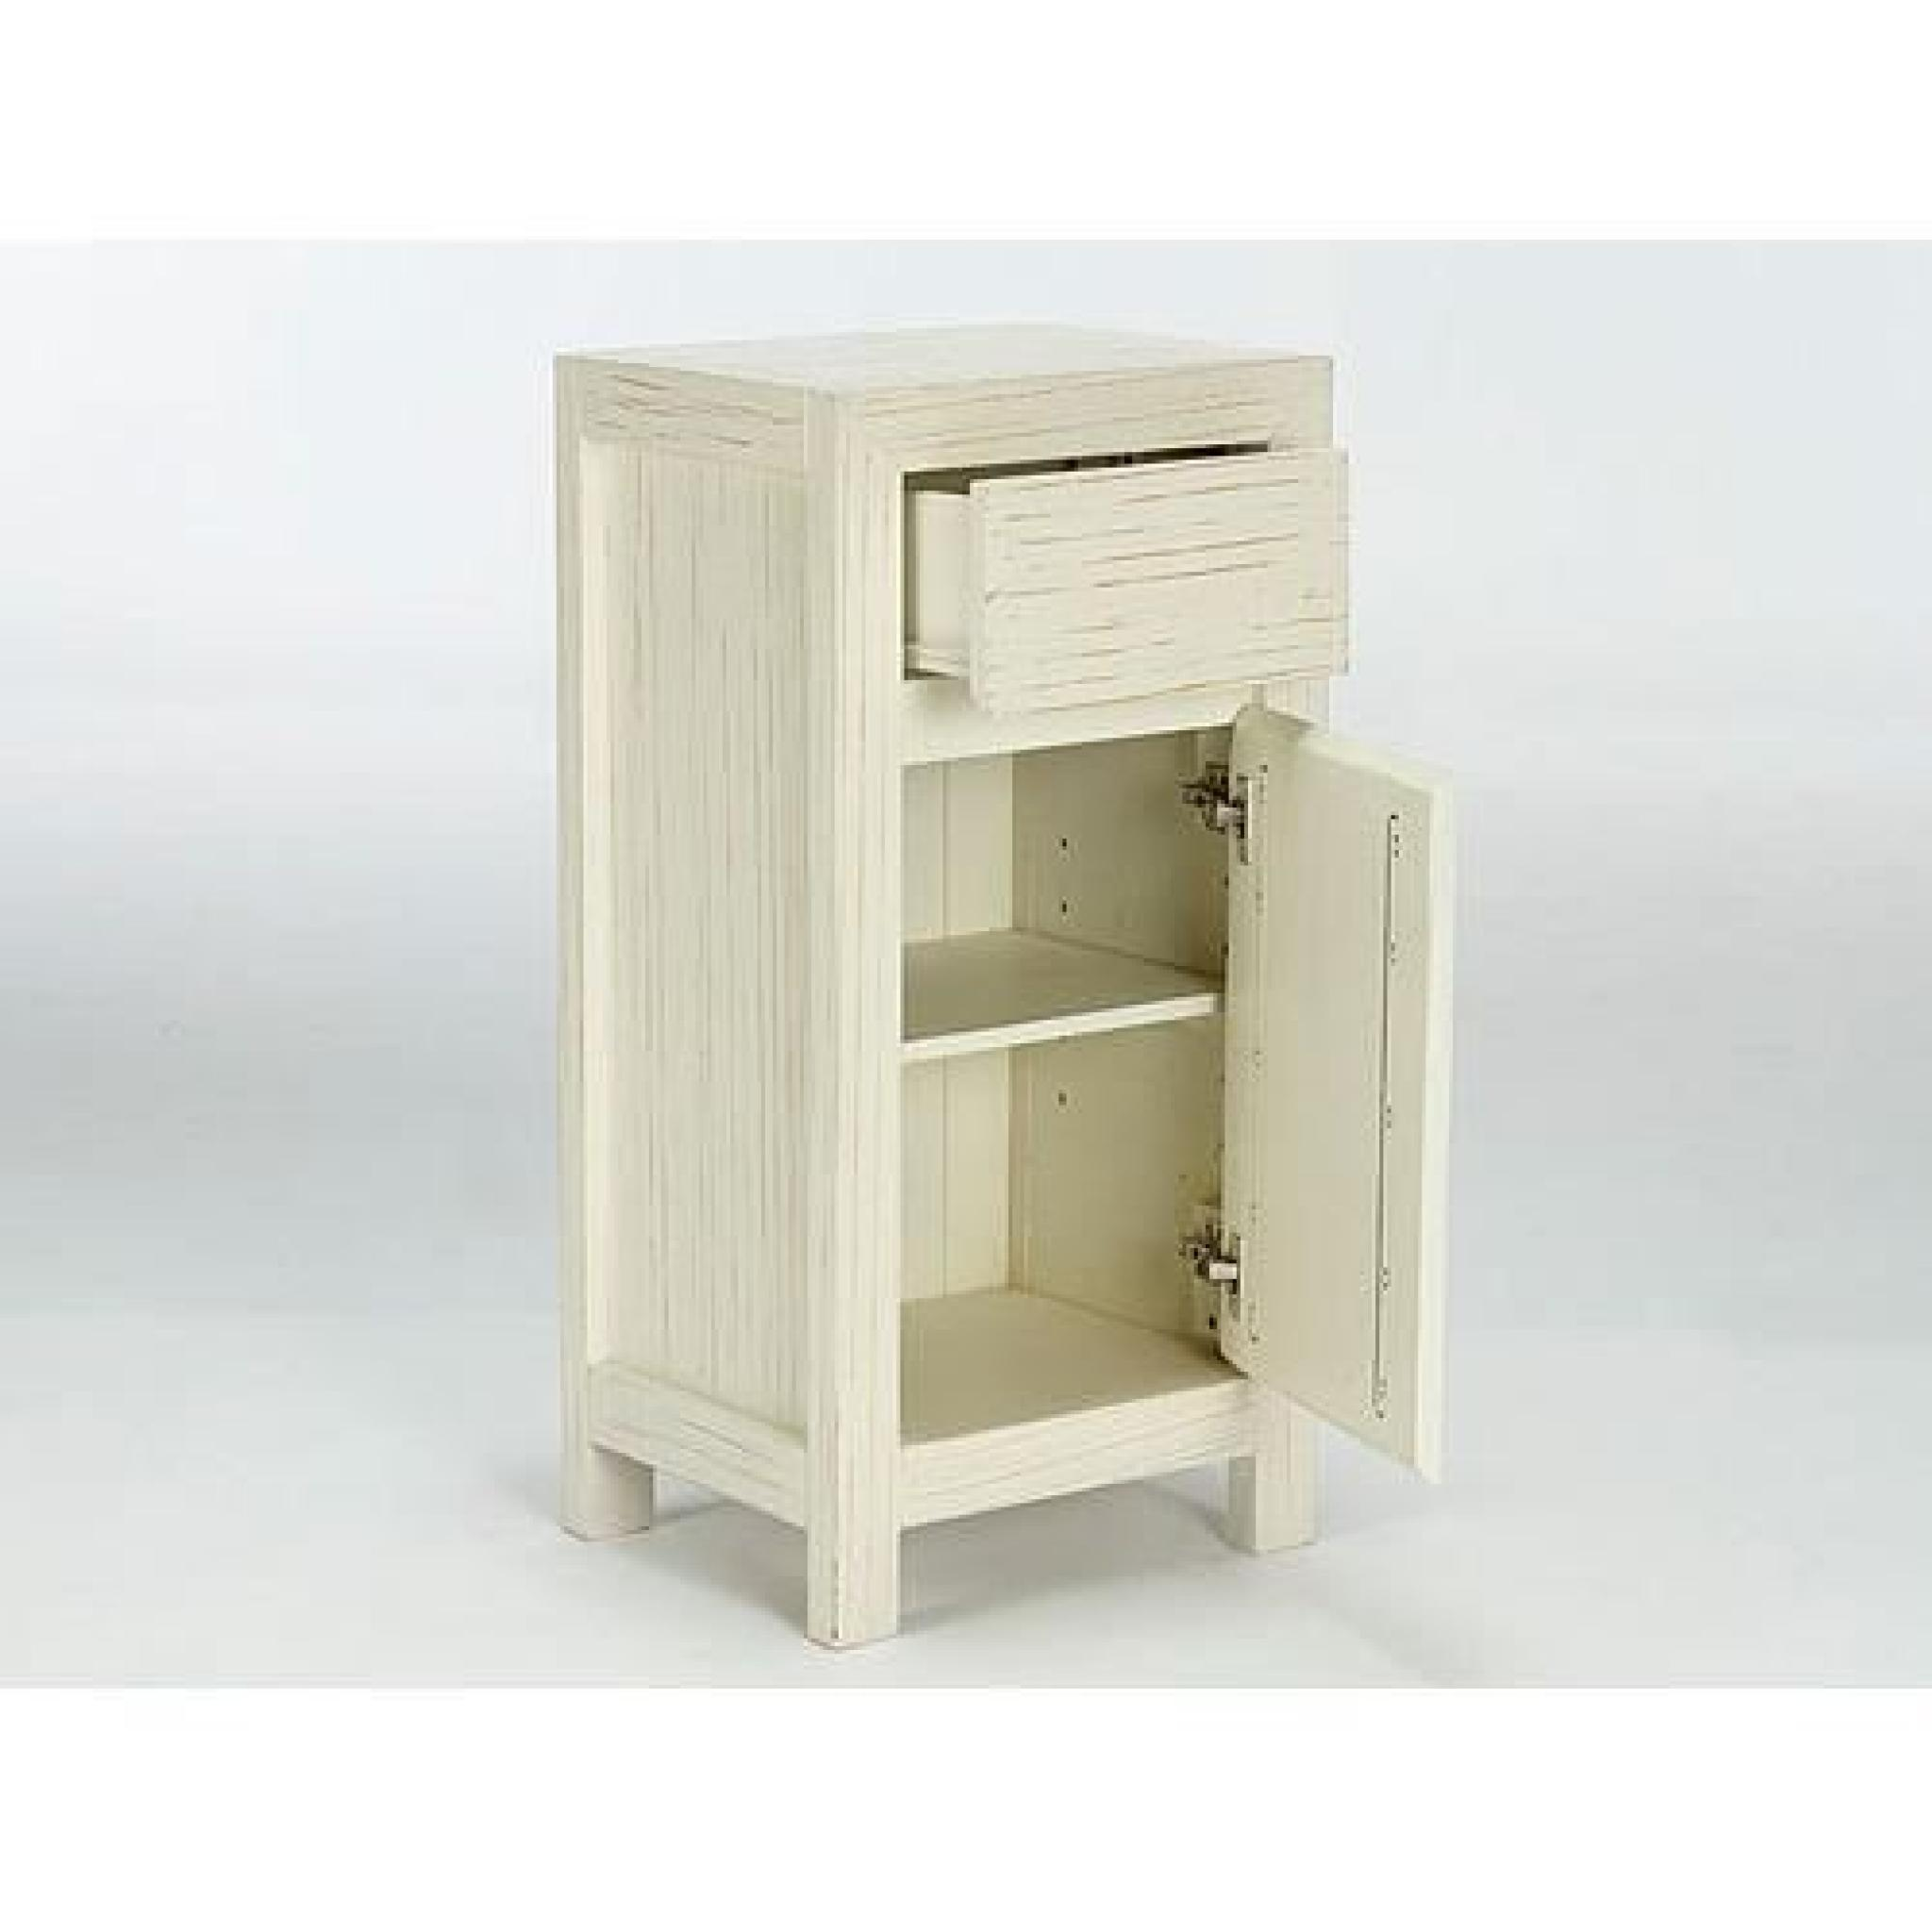 armoire basse babylon en pin laqu blanc massivum achat vente armoire de chambre pas cher. Black Bedroom Furniture Sets. Home Design Ideas